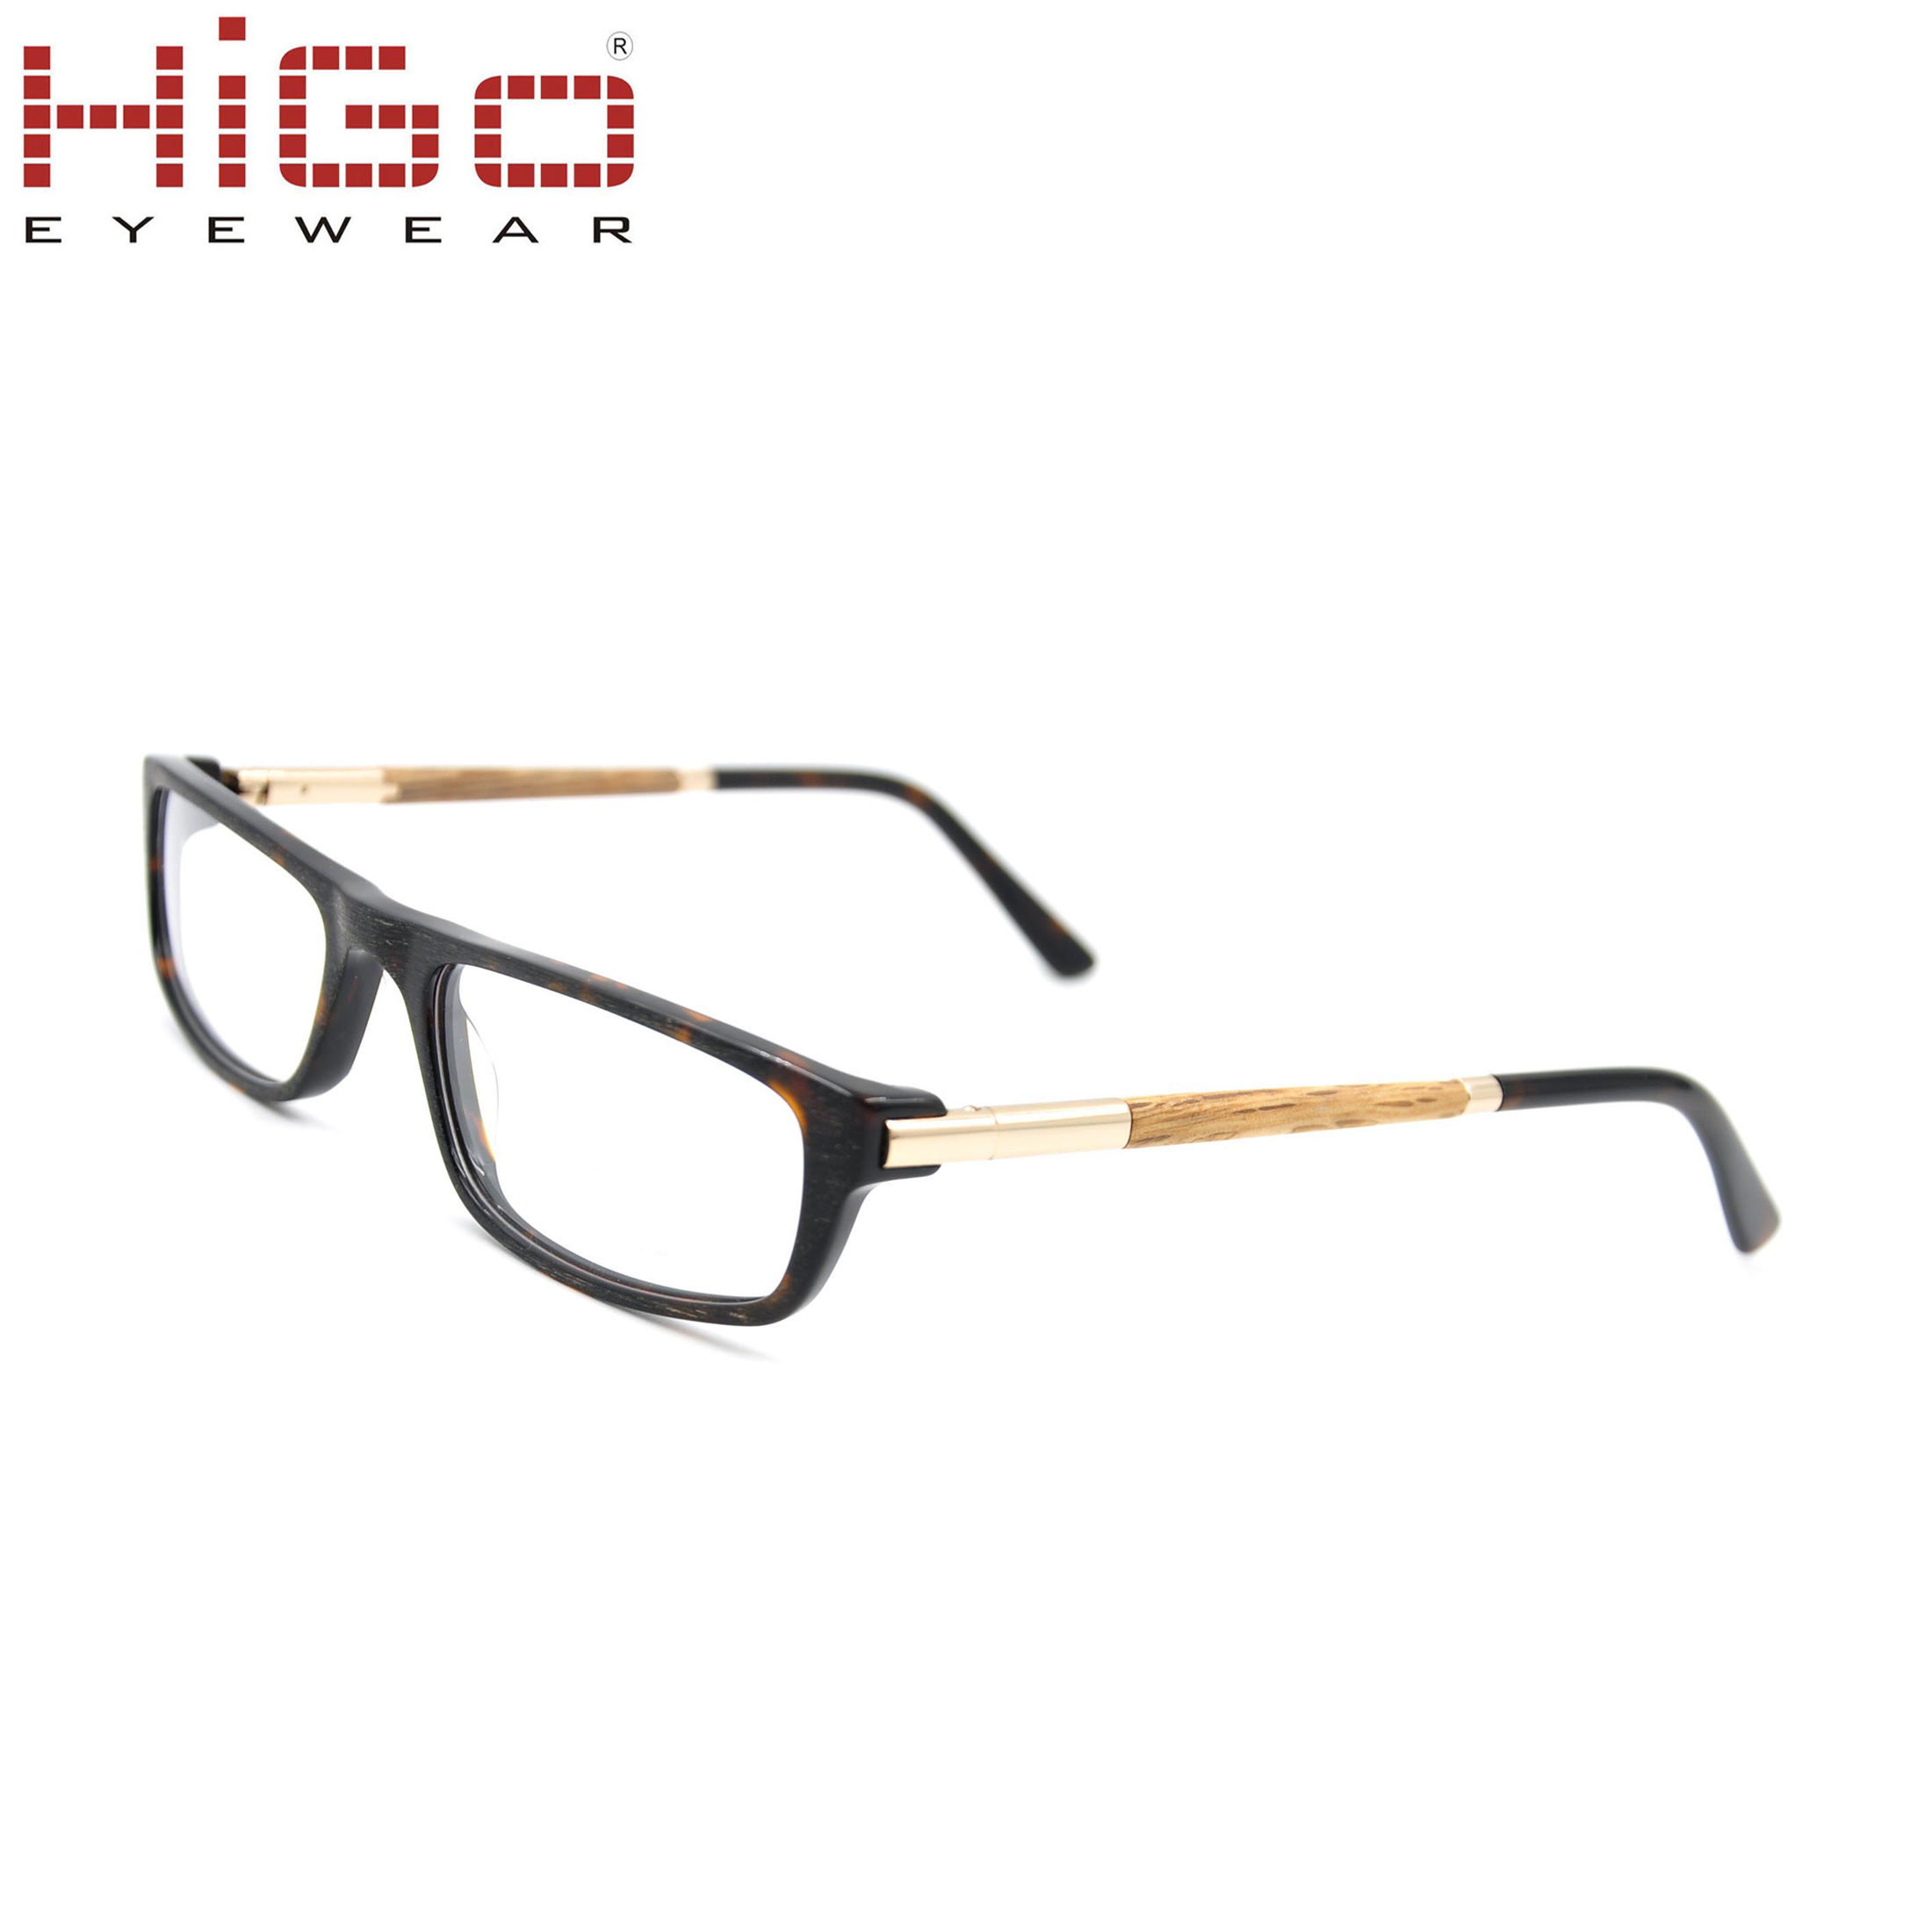 b5c9afc6df China Fashion Hot Sale Spectacles Stock Optical Frame with Good ...